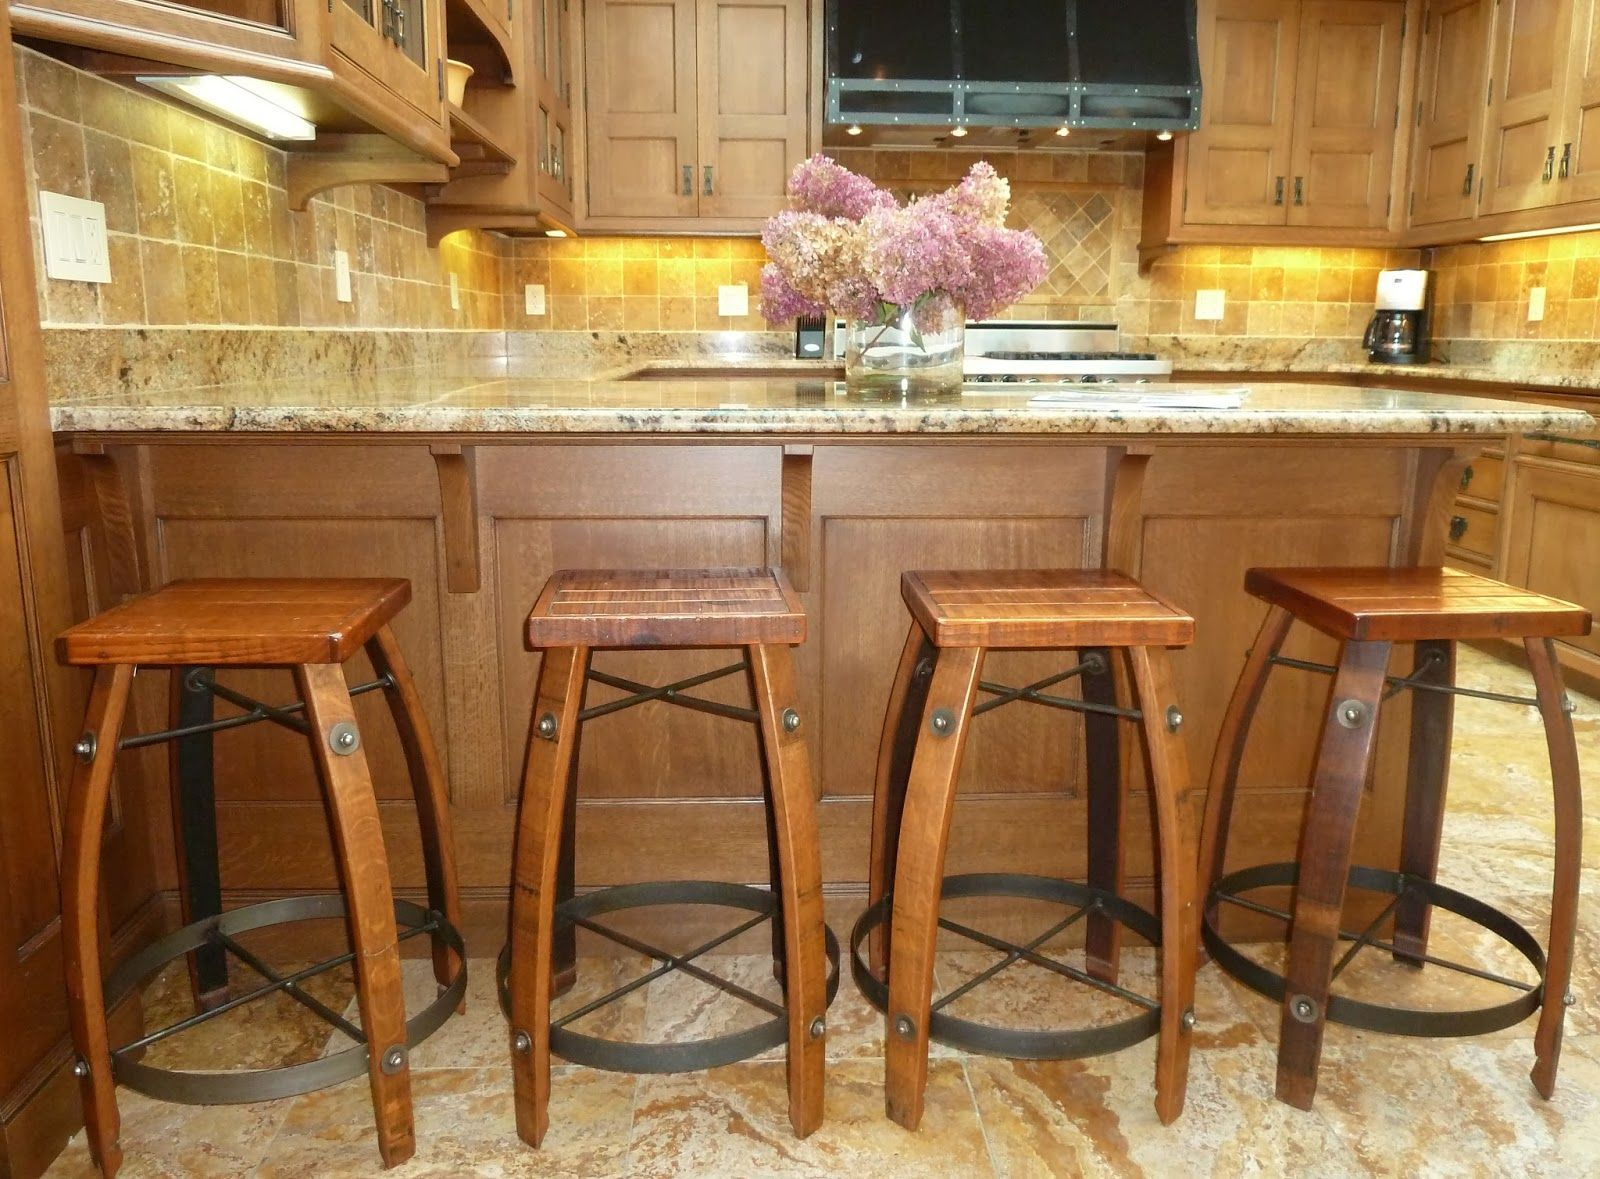 16 Spectacular Brown Granite Counter Top Ideas Rustic Bar Stools Wood Kitchen Counters Stools For Kitchen Island